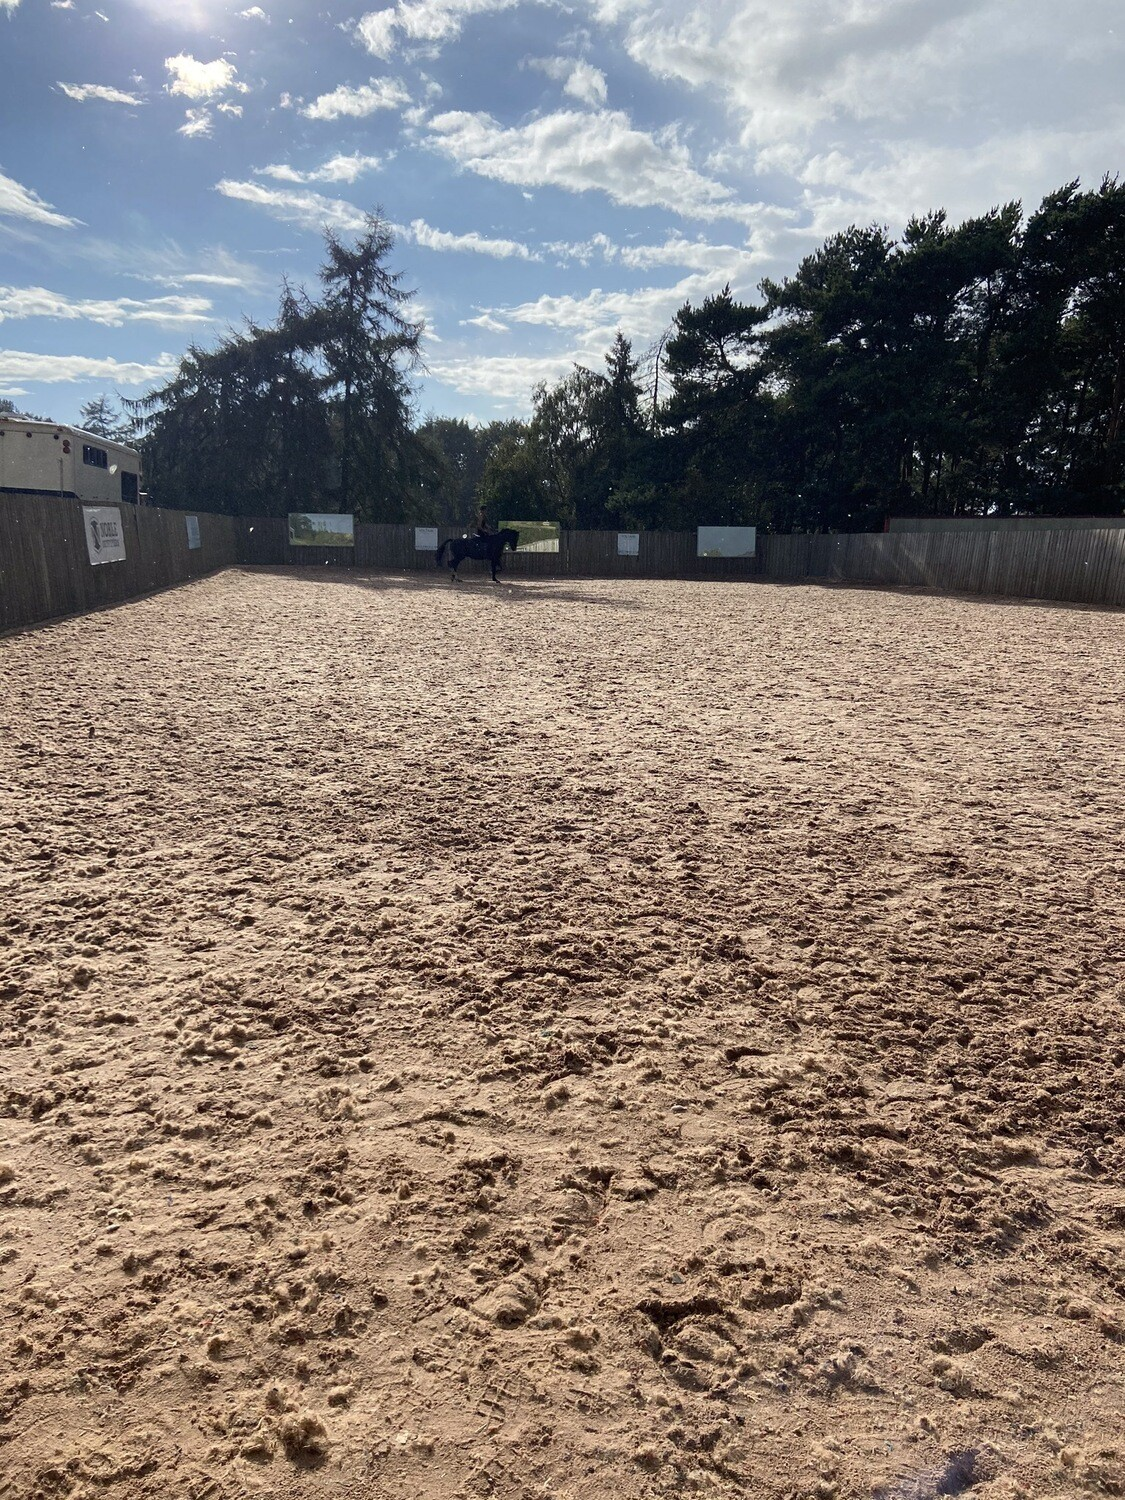 Testt: Mounted Review : 30 Minutes (Clients Must Have Had A Previous Assessment) : October 19th : Hyde Lodge, Leics (Arena Fee Of £5 Payable To Host On The Day)